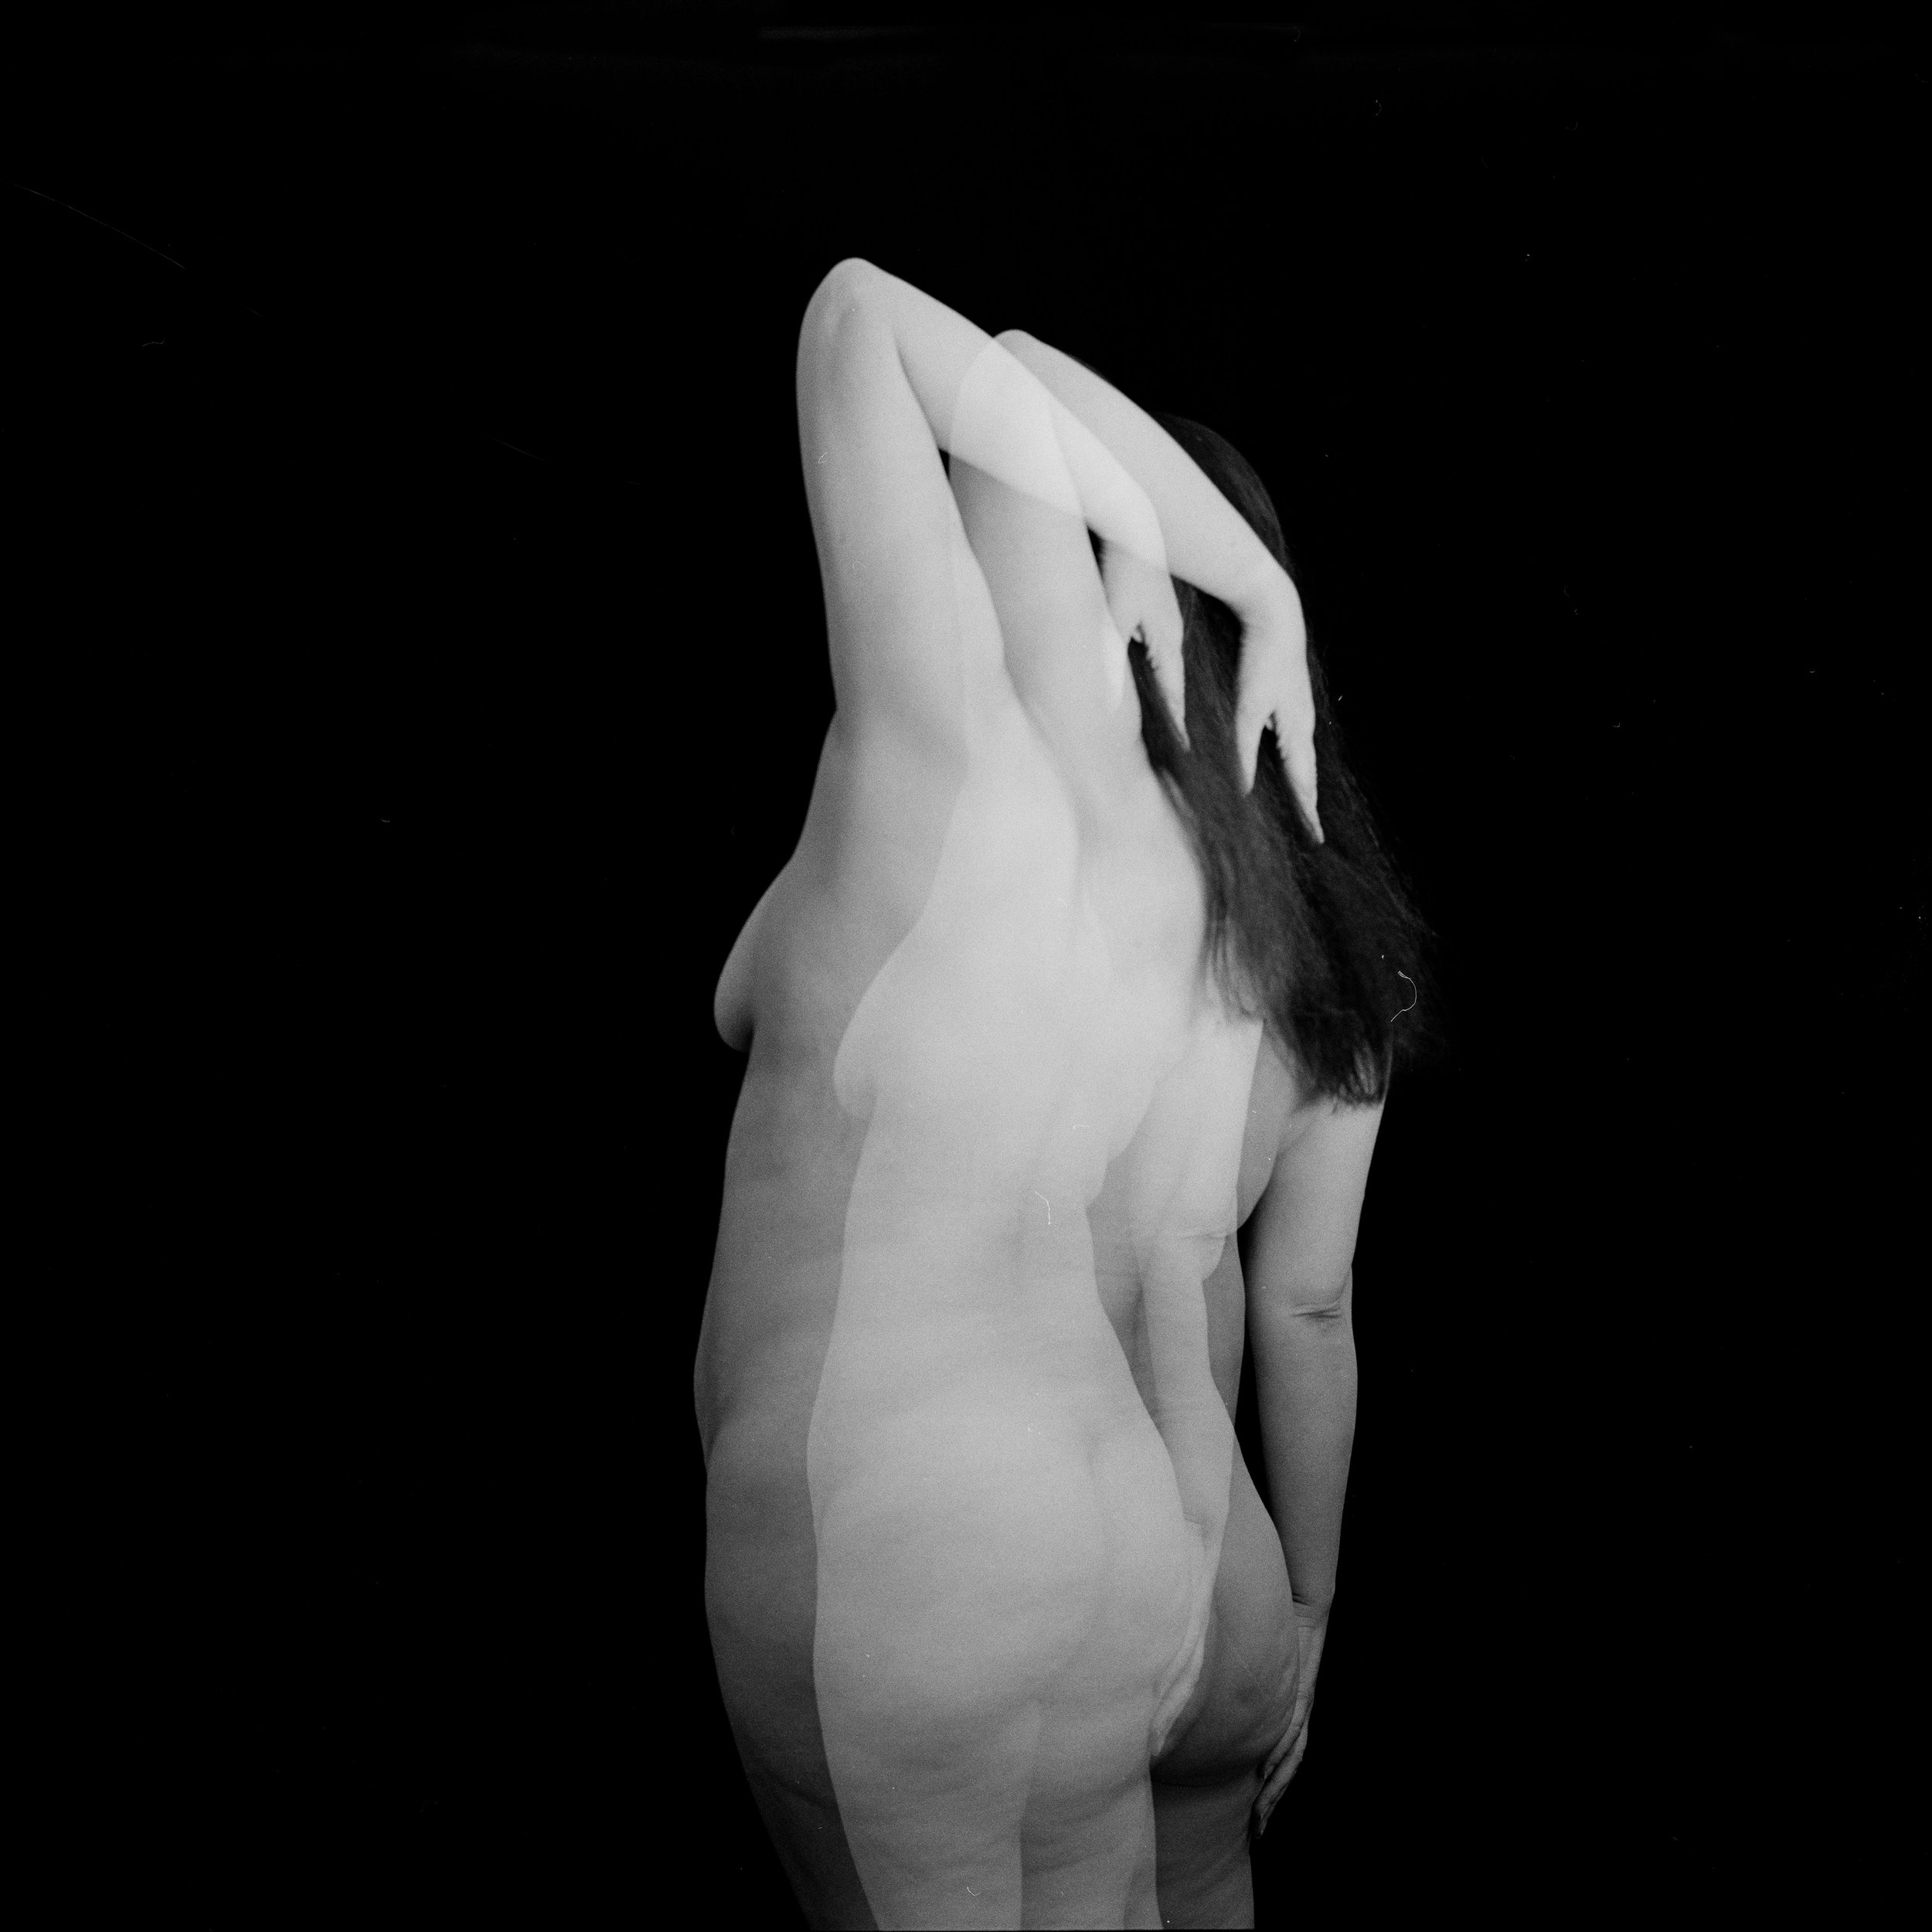 Fine art photography, The body, Figure, Nude, Black and White, Film photography